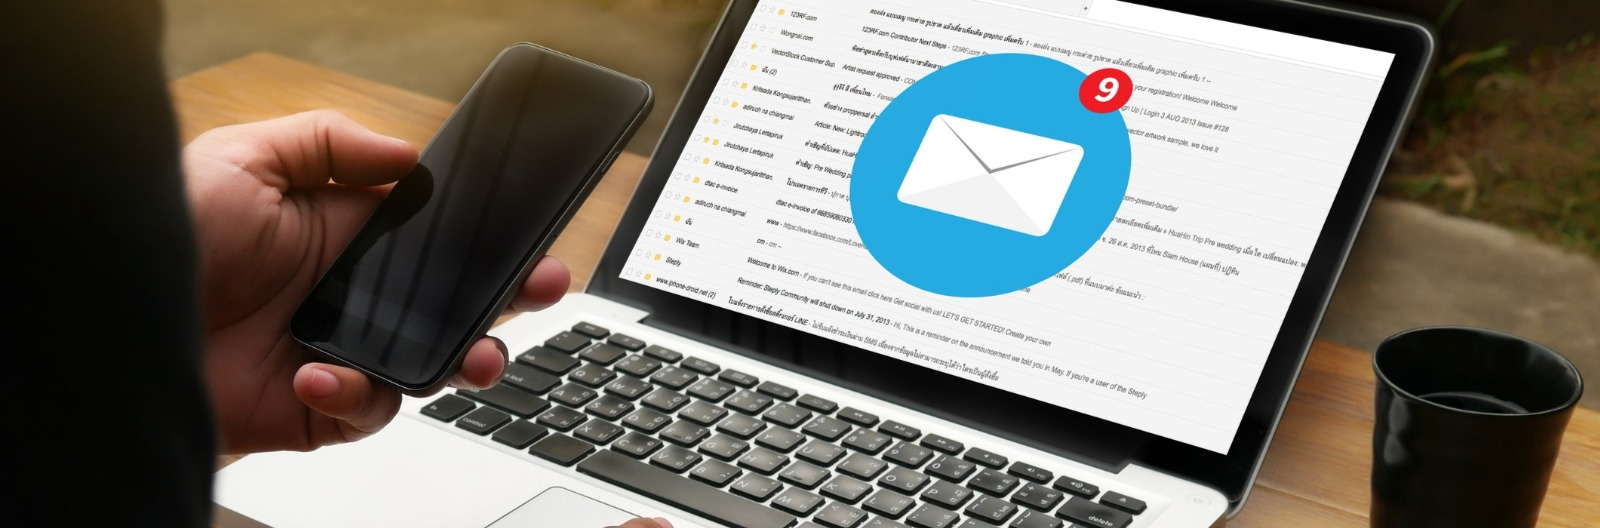 Capito Email Security and Backup